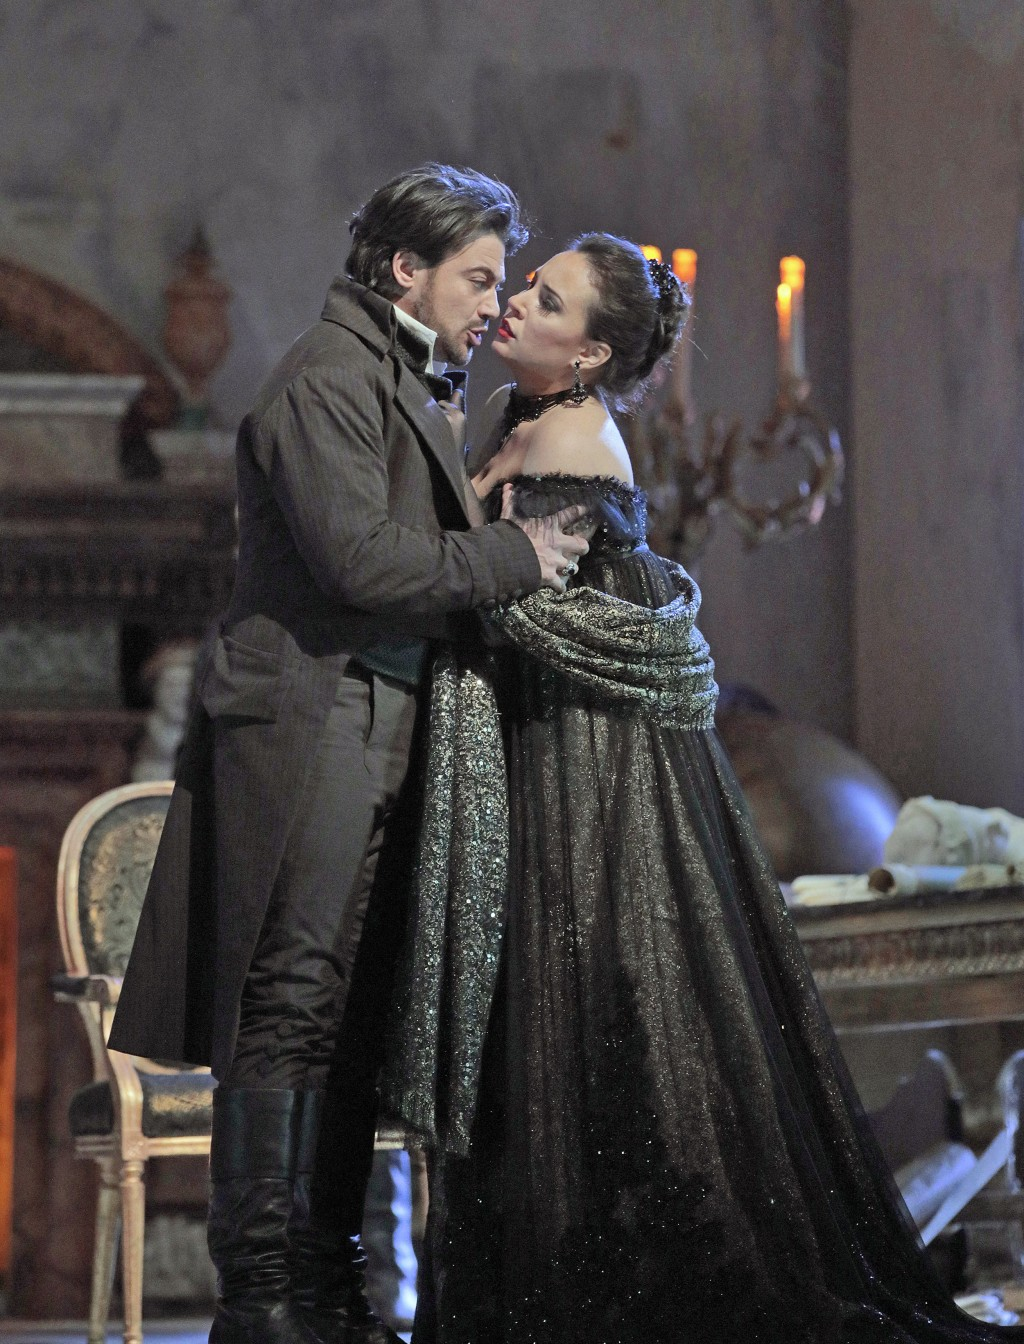 In this Dec. 21, 2017 photo provided by the Metropolitan Opera, Vittorio Grigolo, left, appears as the painter Mario Cavaradossi and Sonya Yoncheva is...